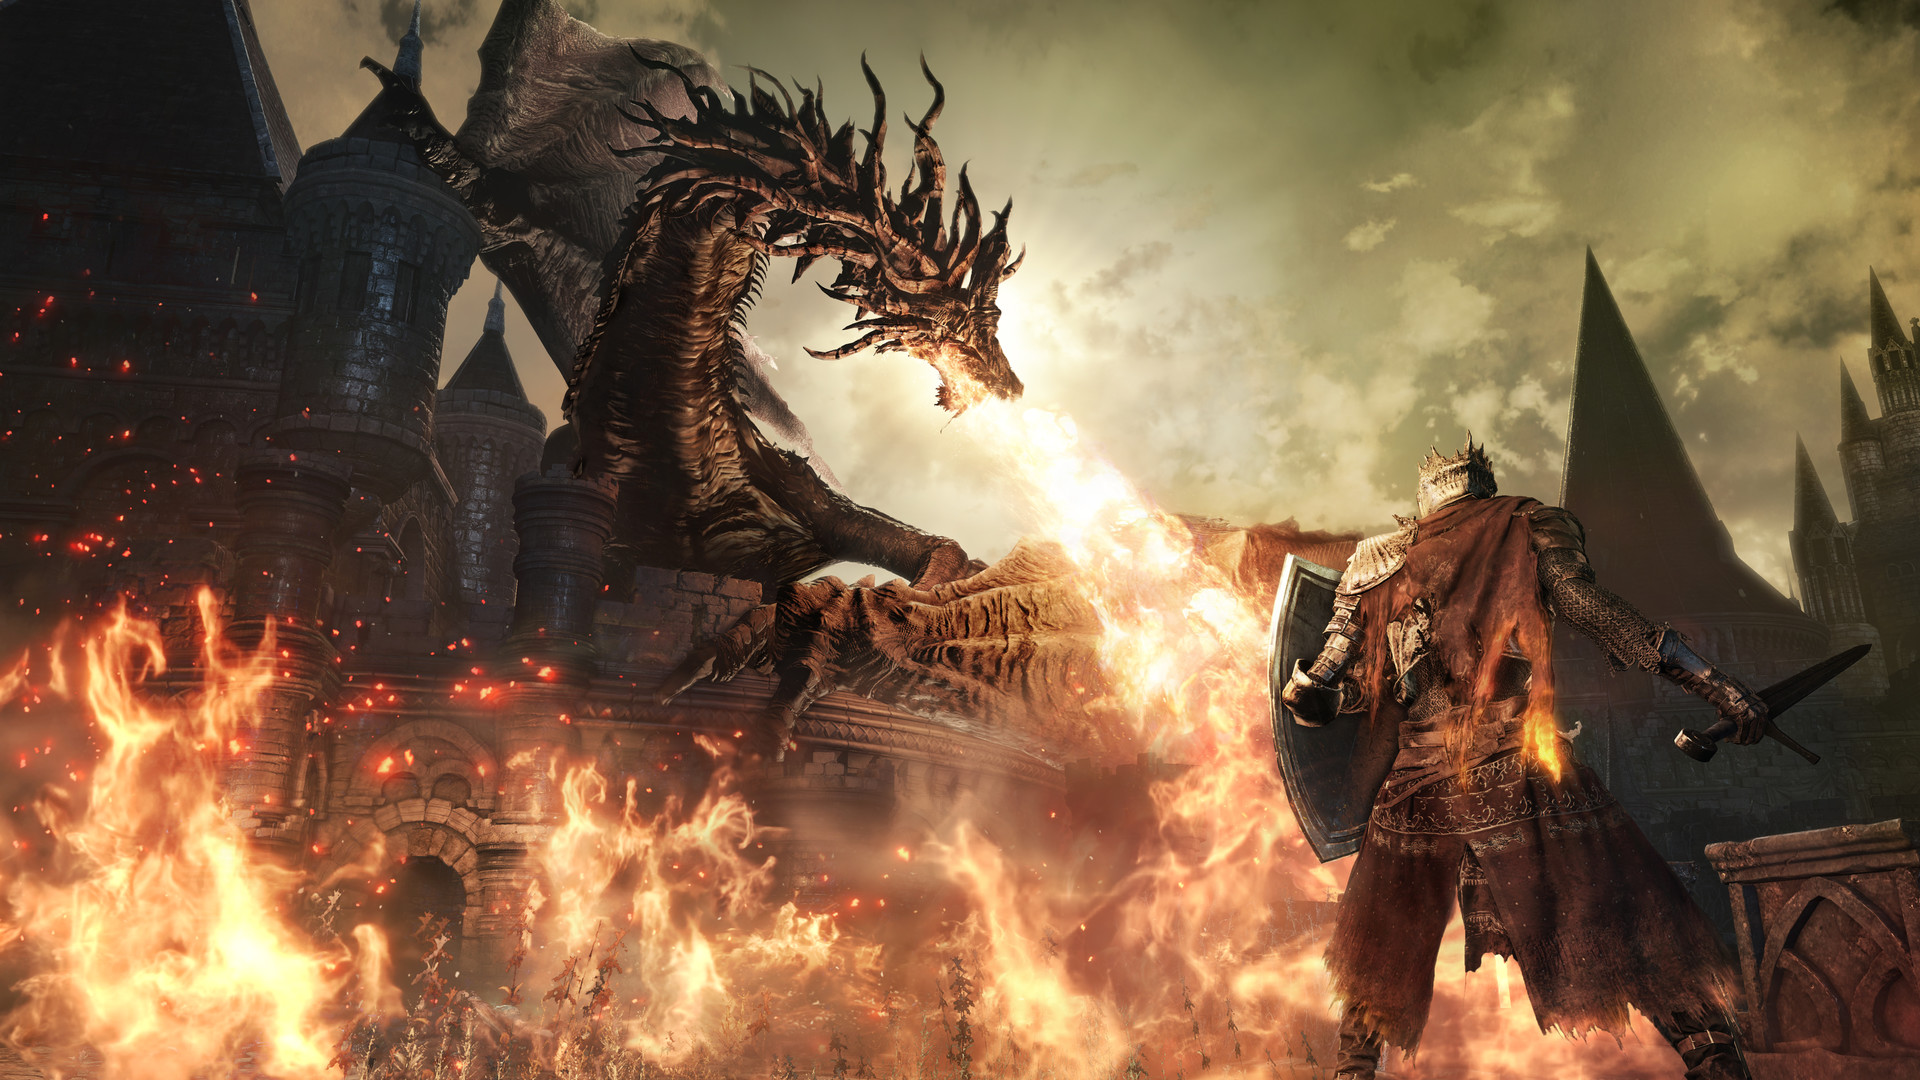 See Dark Souls 3's first boss beaten with bare fists in 60fps